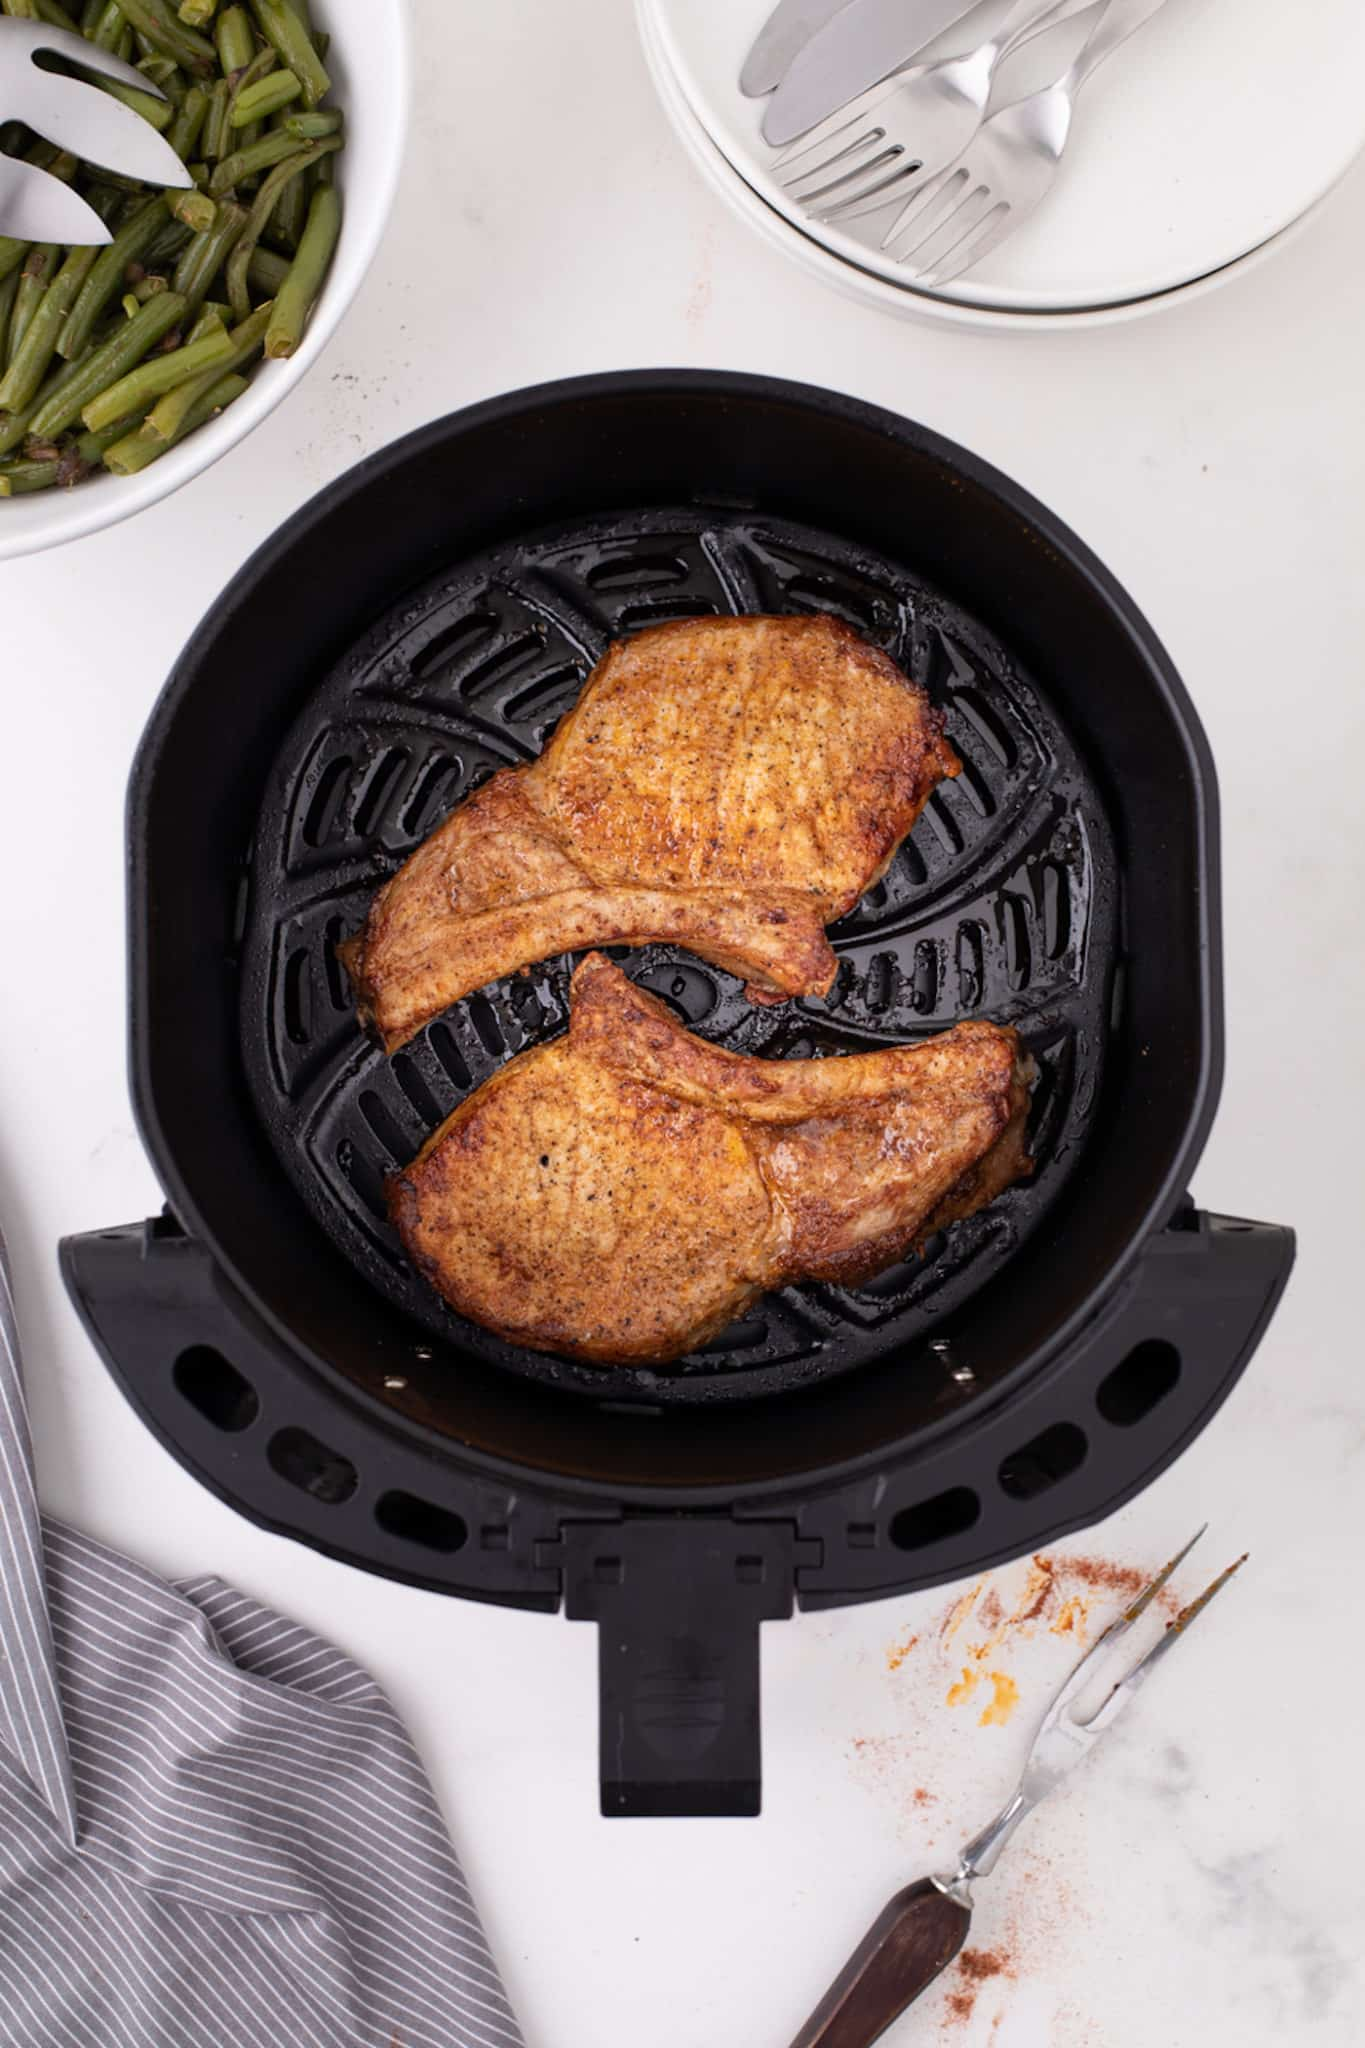 Cooked pork chops with no breading in an air fryer